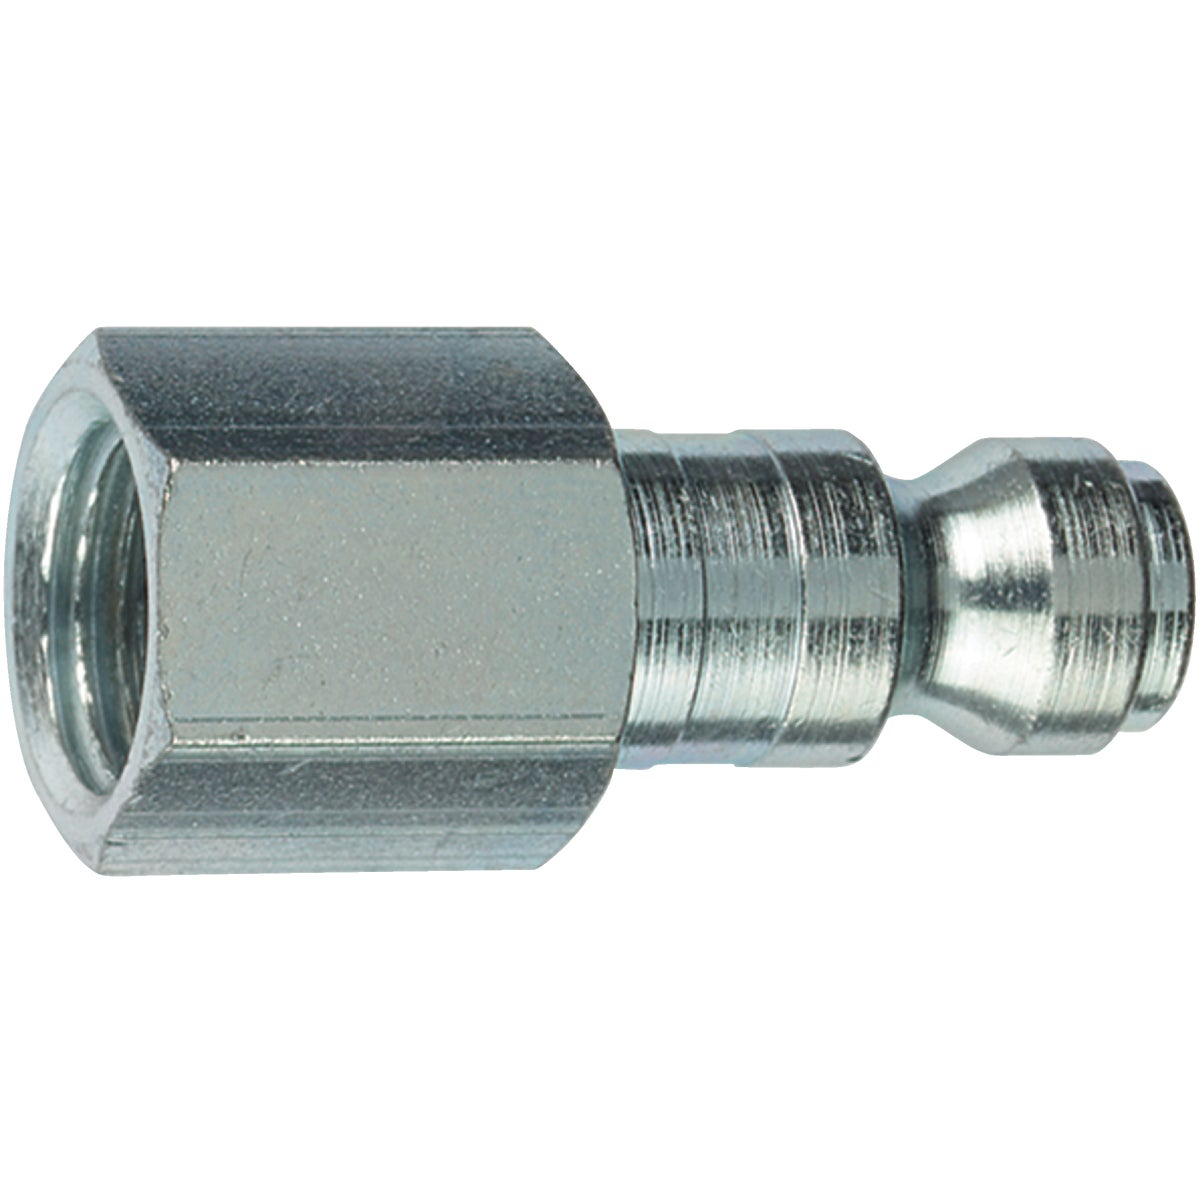 1/4 FNPT X 3/8 TF NIPPLE - 75322 by Forney Industries